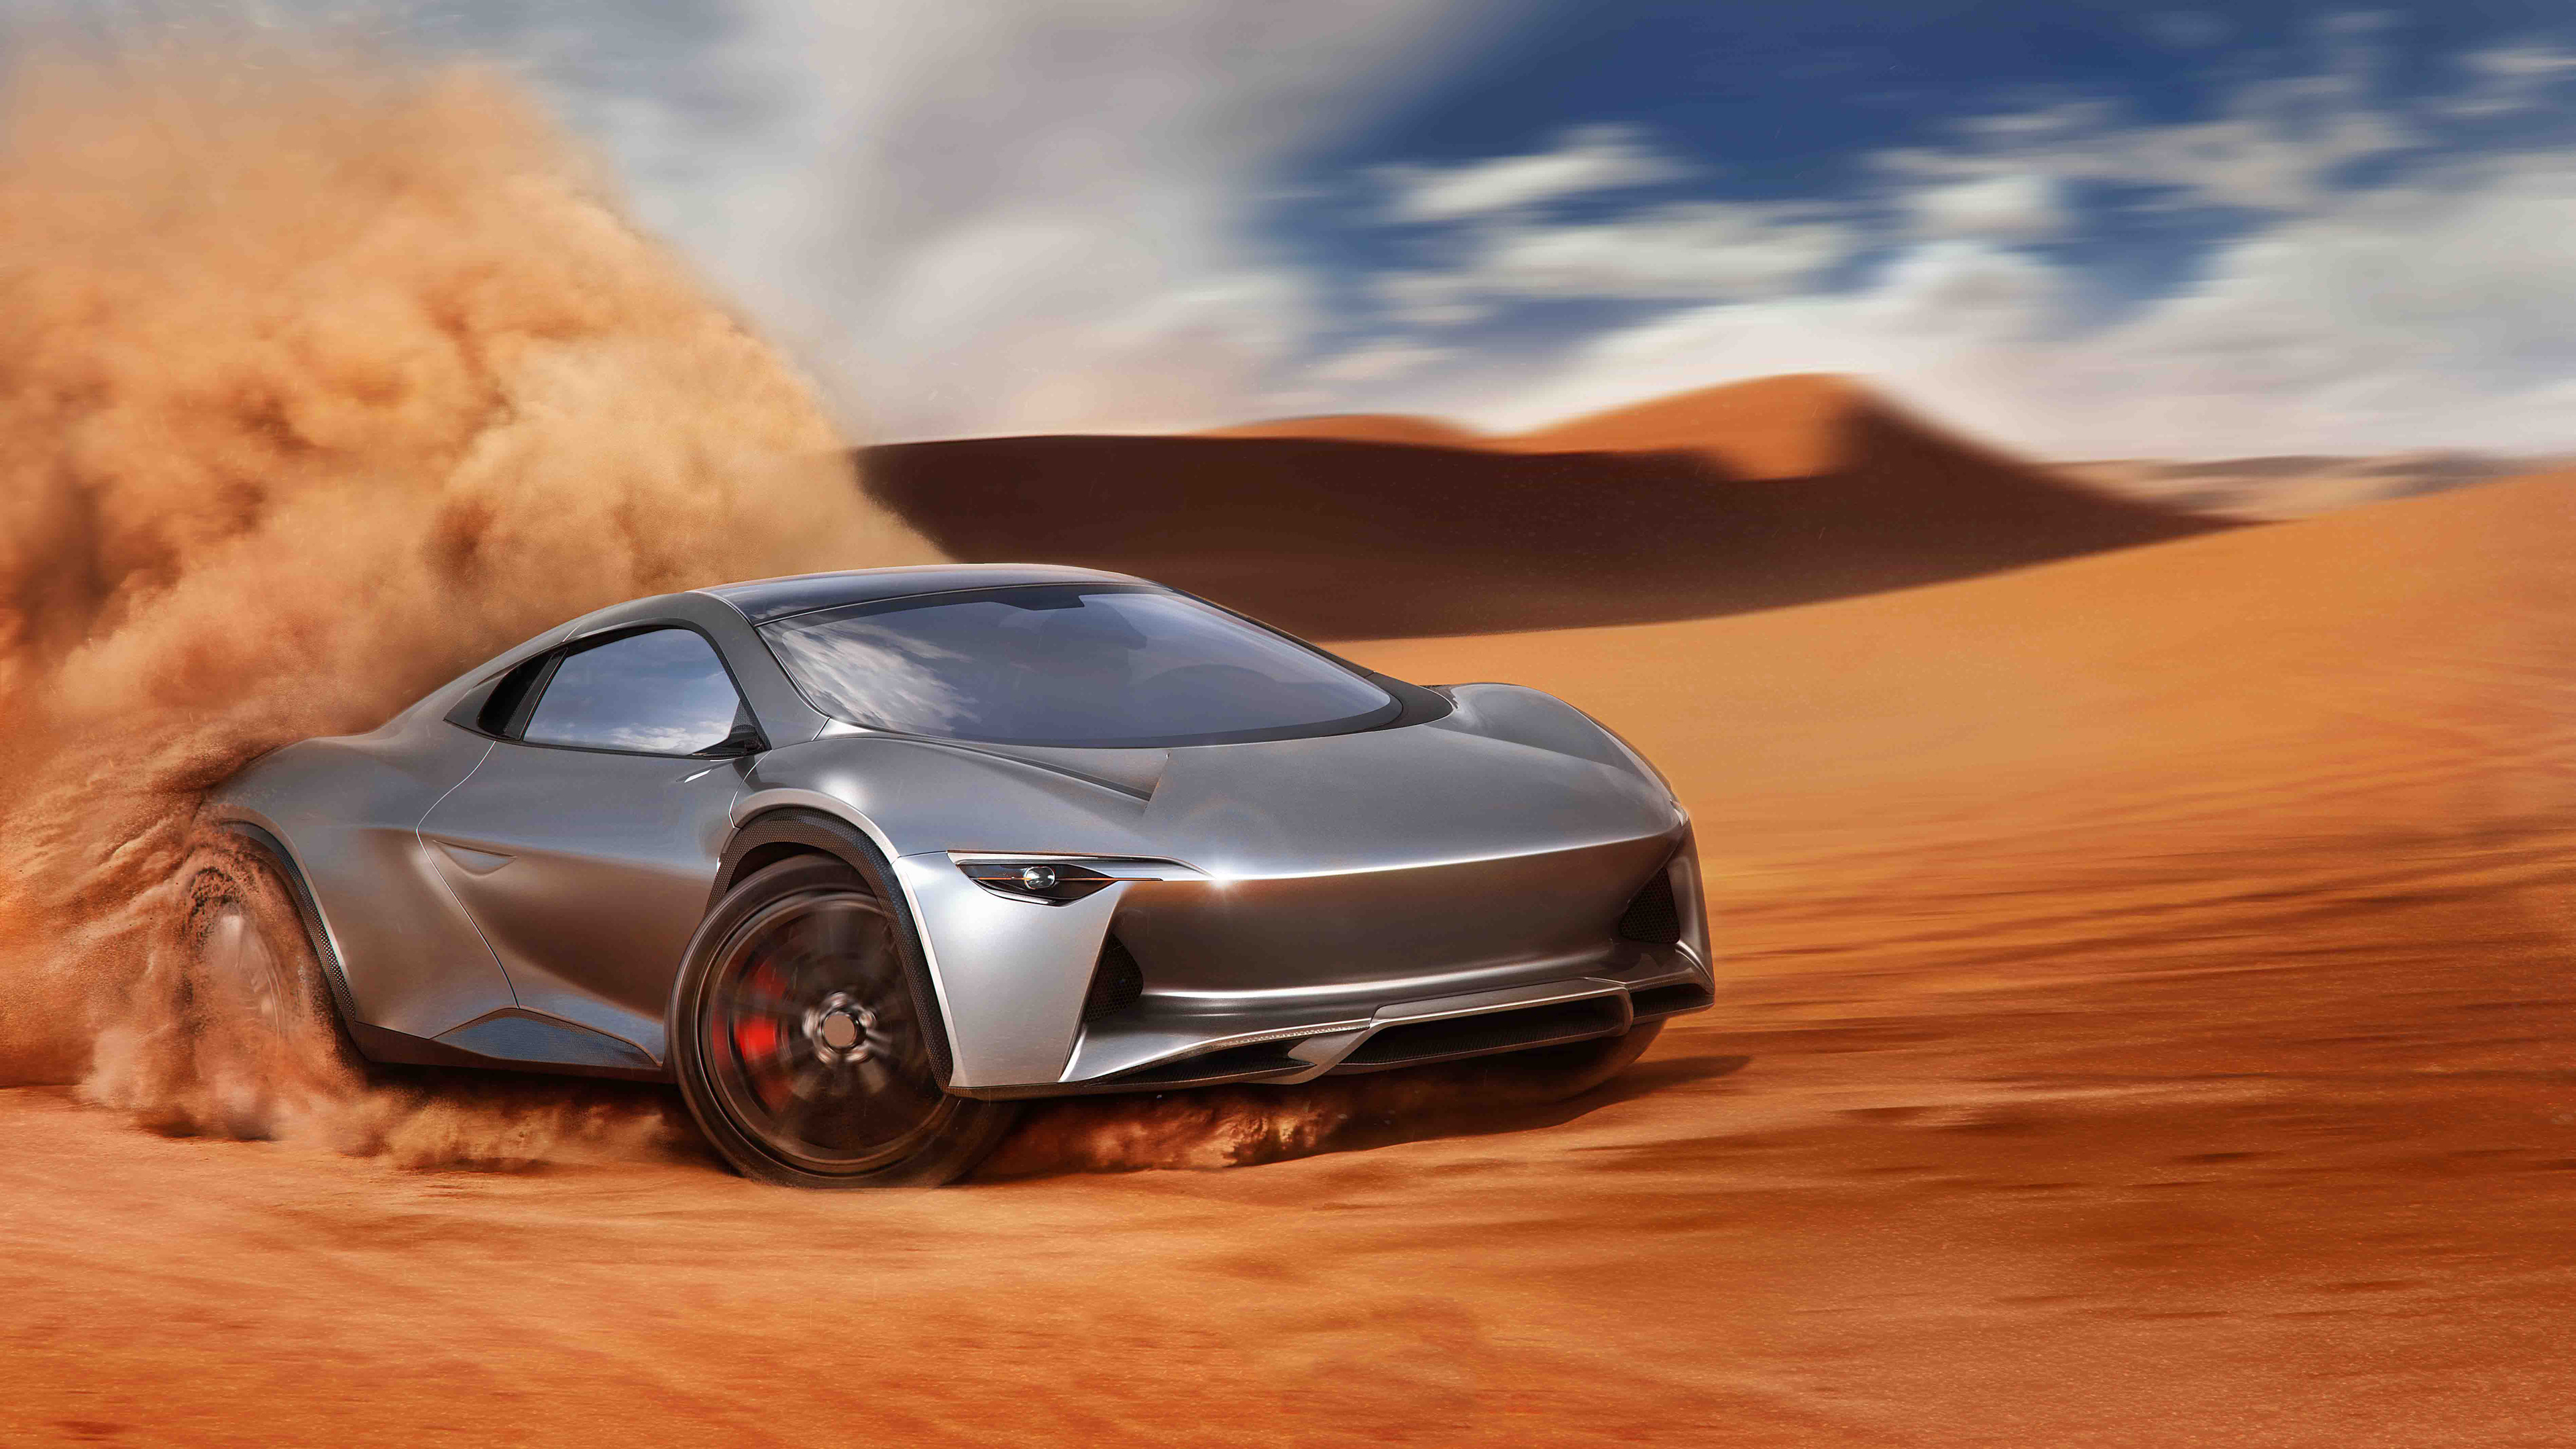 camal ramusa concept 4k 1550513296 - Camal Ramusa Concept 4k - hd-wallpapers, cars wallpapers, 4k-wallpapers